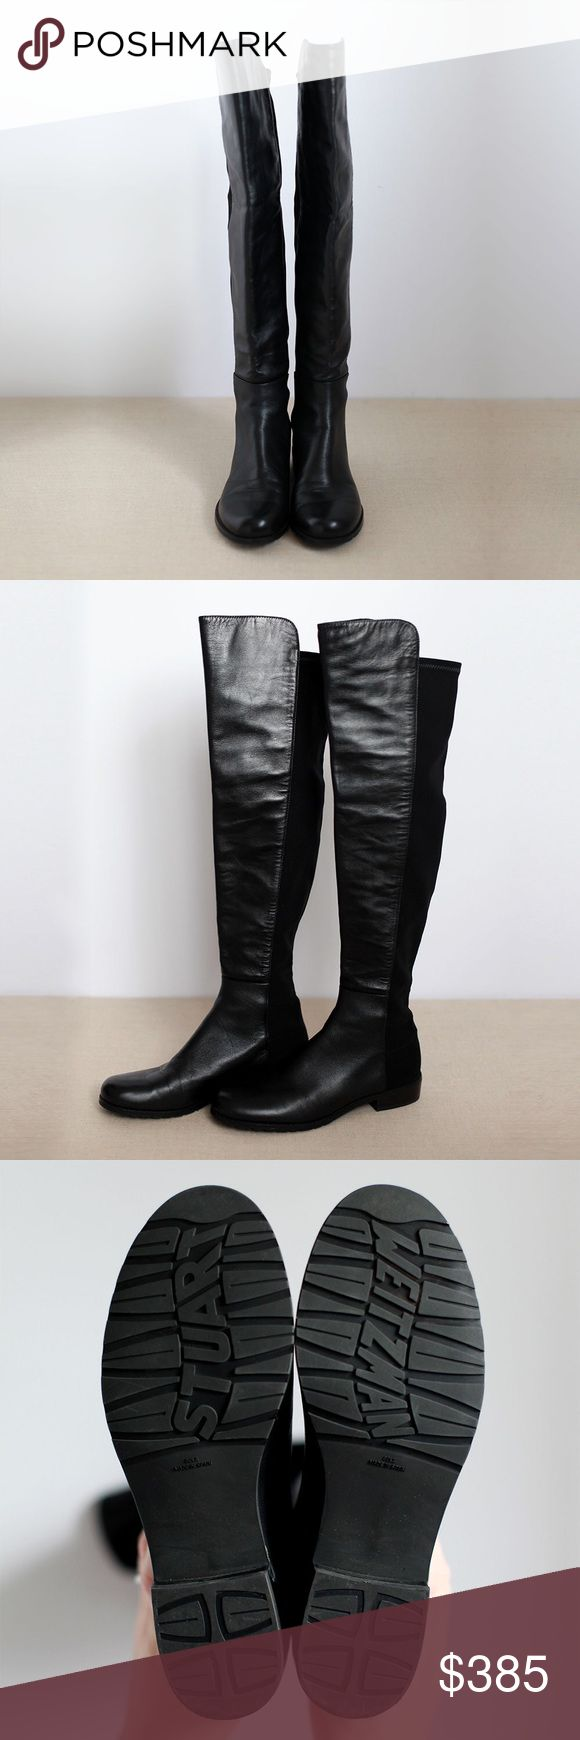 Stuart Weitzman 5050 Boot Like New, Over the Knee, Black Leather, Low Heel Boot Stuart Weitzman Shoes Over the Knee Boots